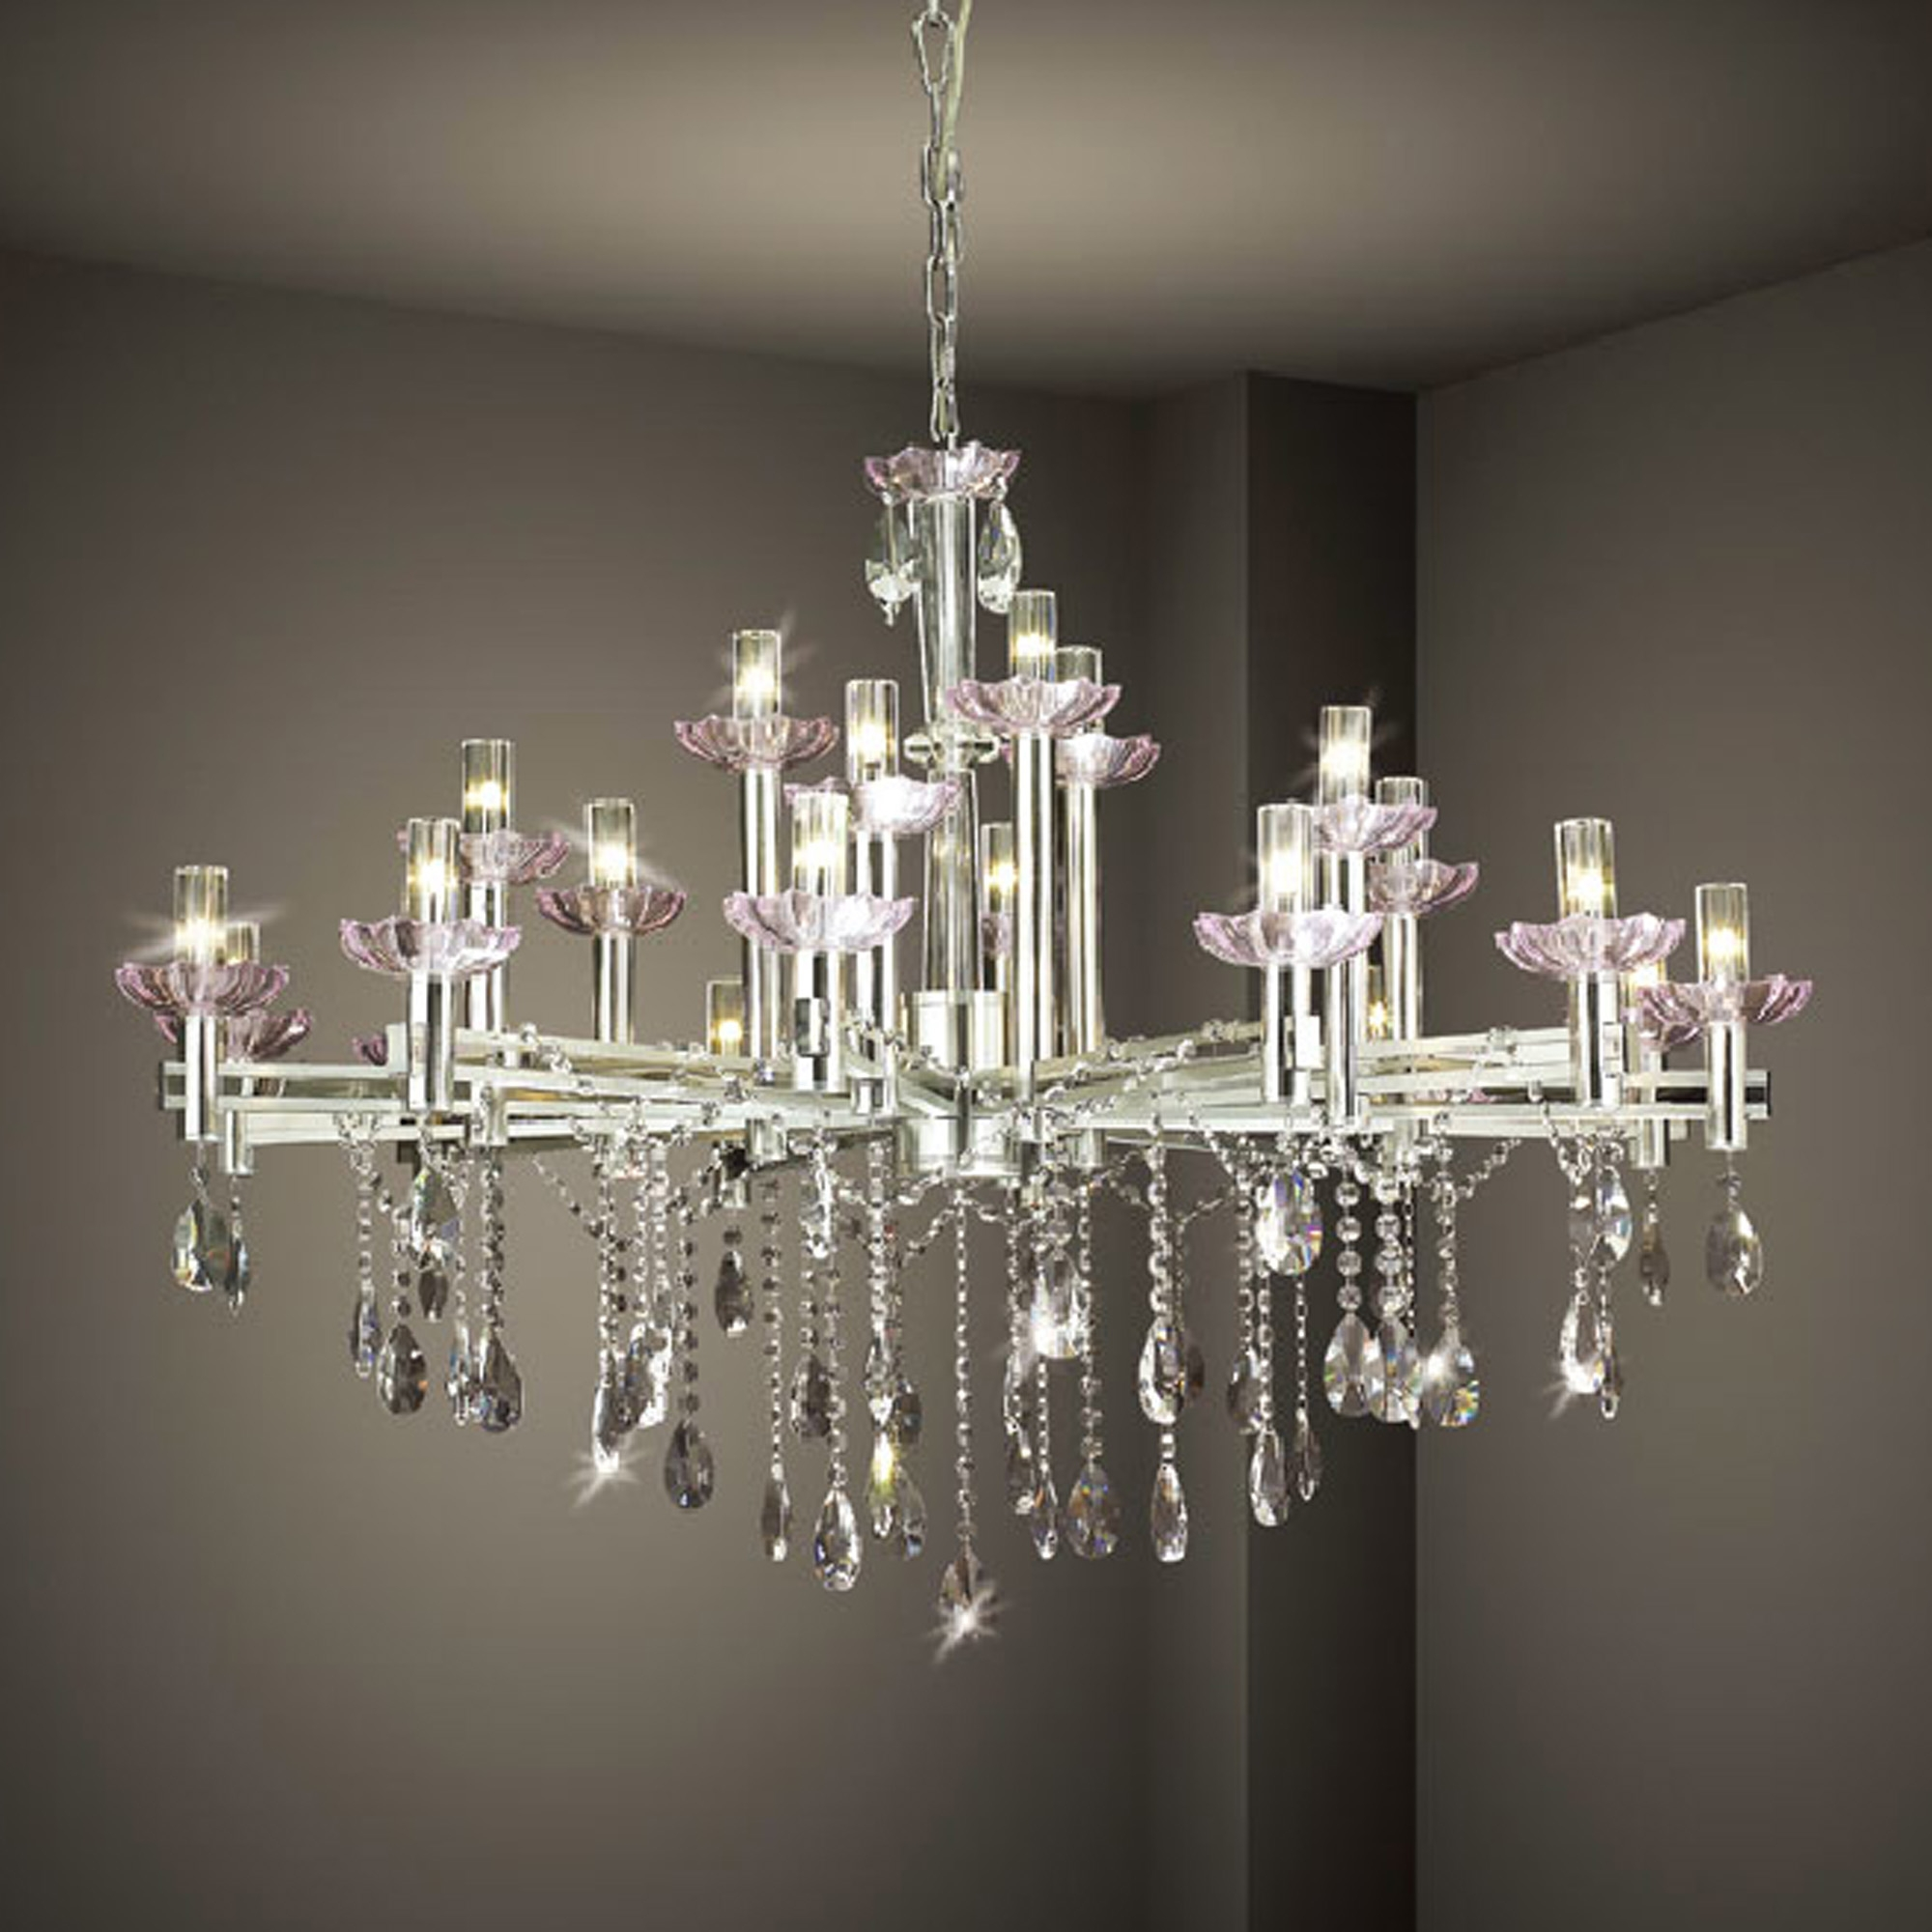 Modern White Chandelier Intended For Contemporary Large Chandeliers (#11 of 12)